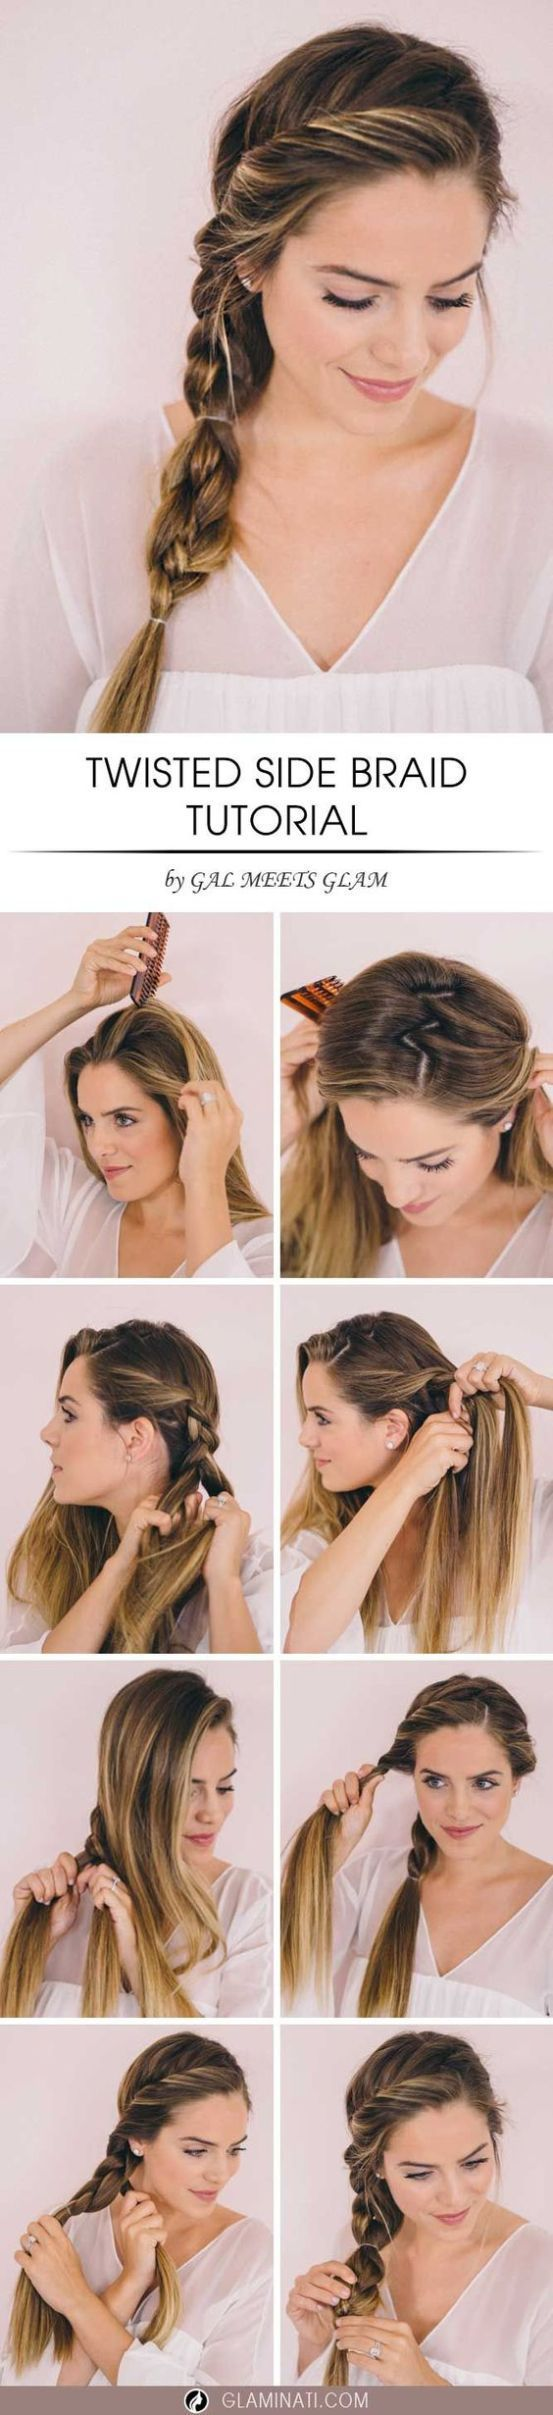 Quick And Easy Hairstyles For Medium Hair 11 Easy And Quick Braids To Save Time And Look Awesome  Easy Hair